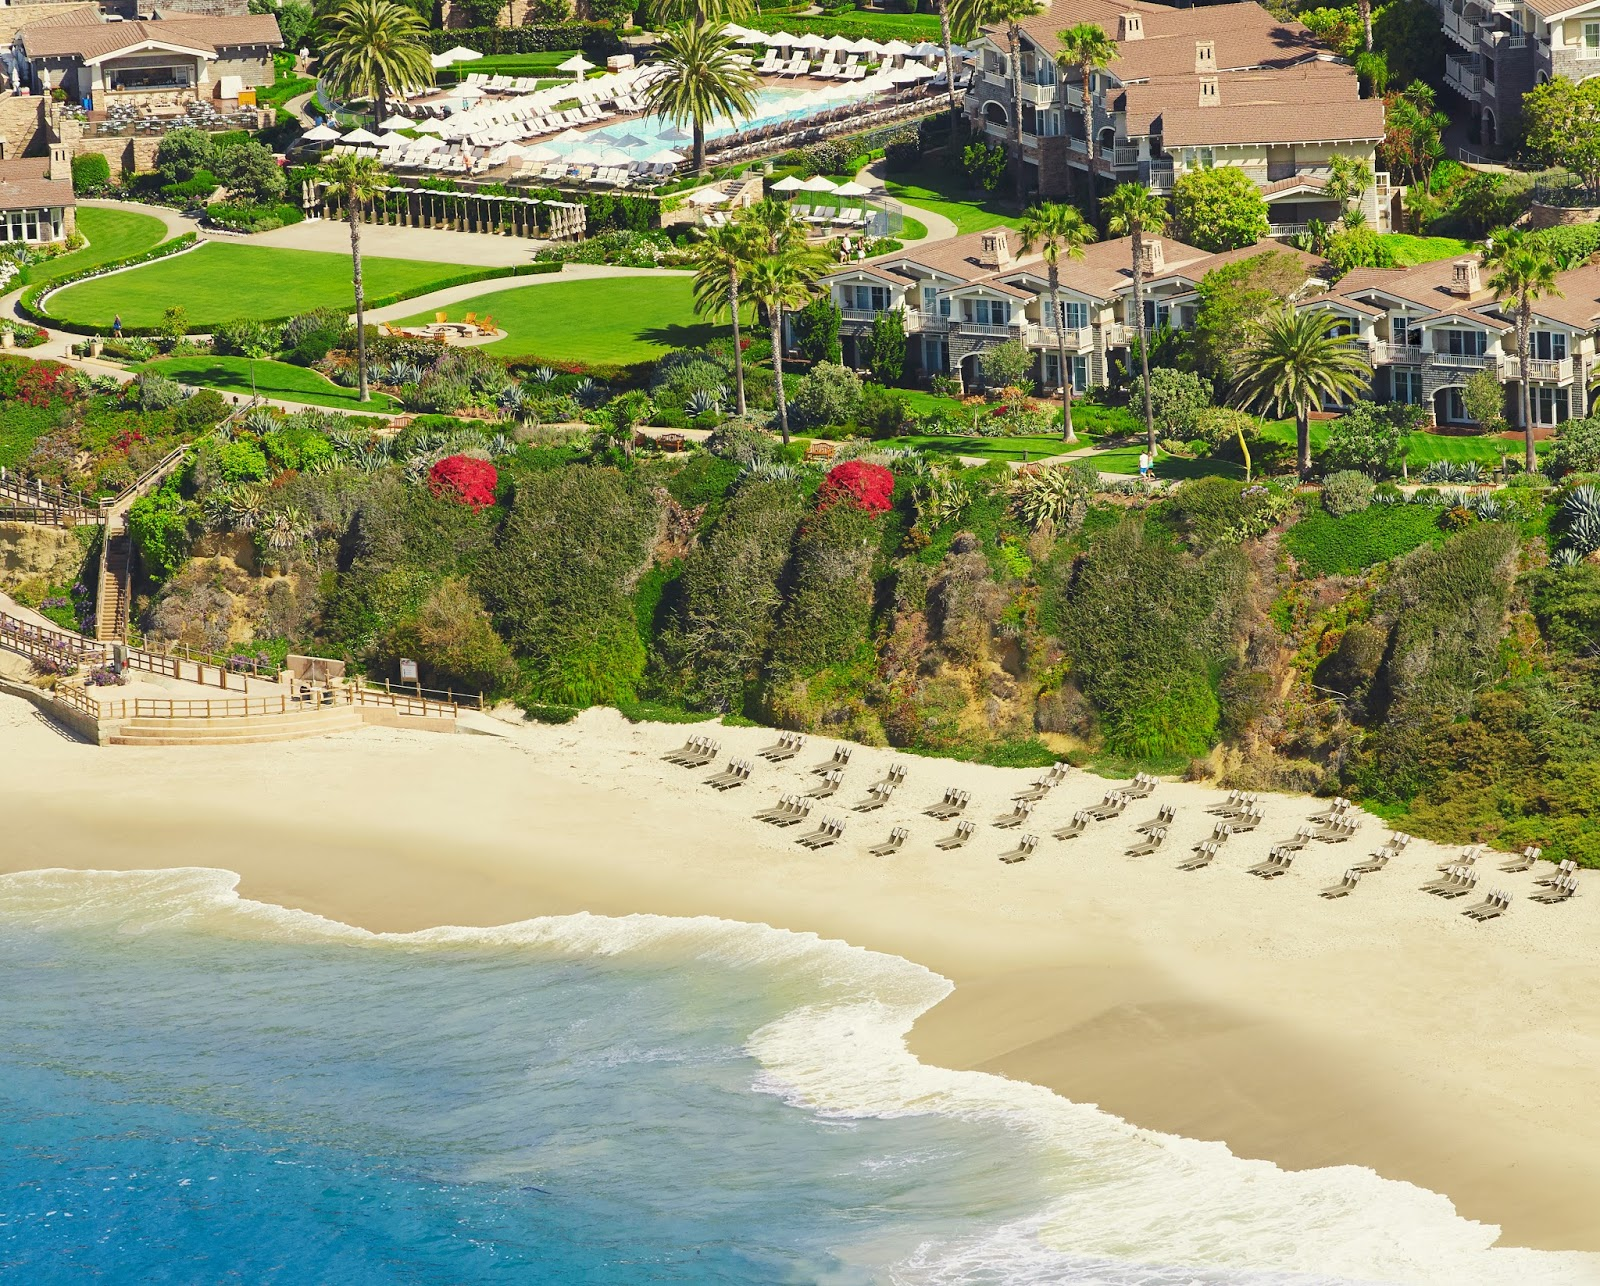 THE address in Southern California: MONTAGE IN LAGUNA -- Studio, the ...